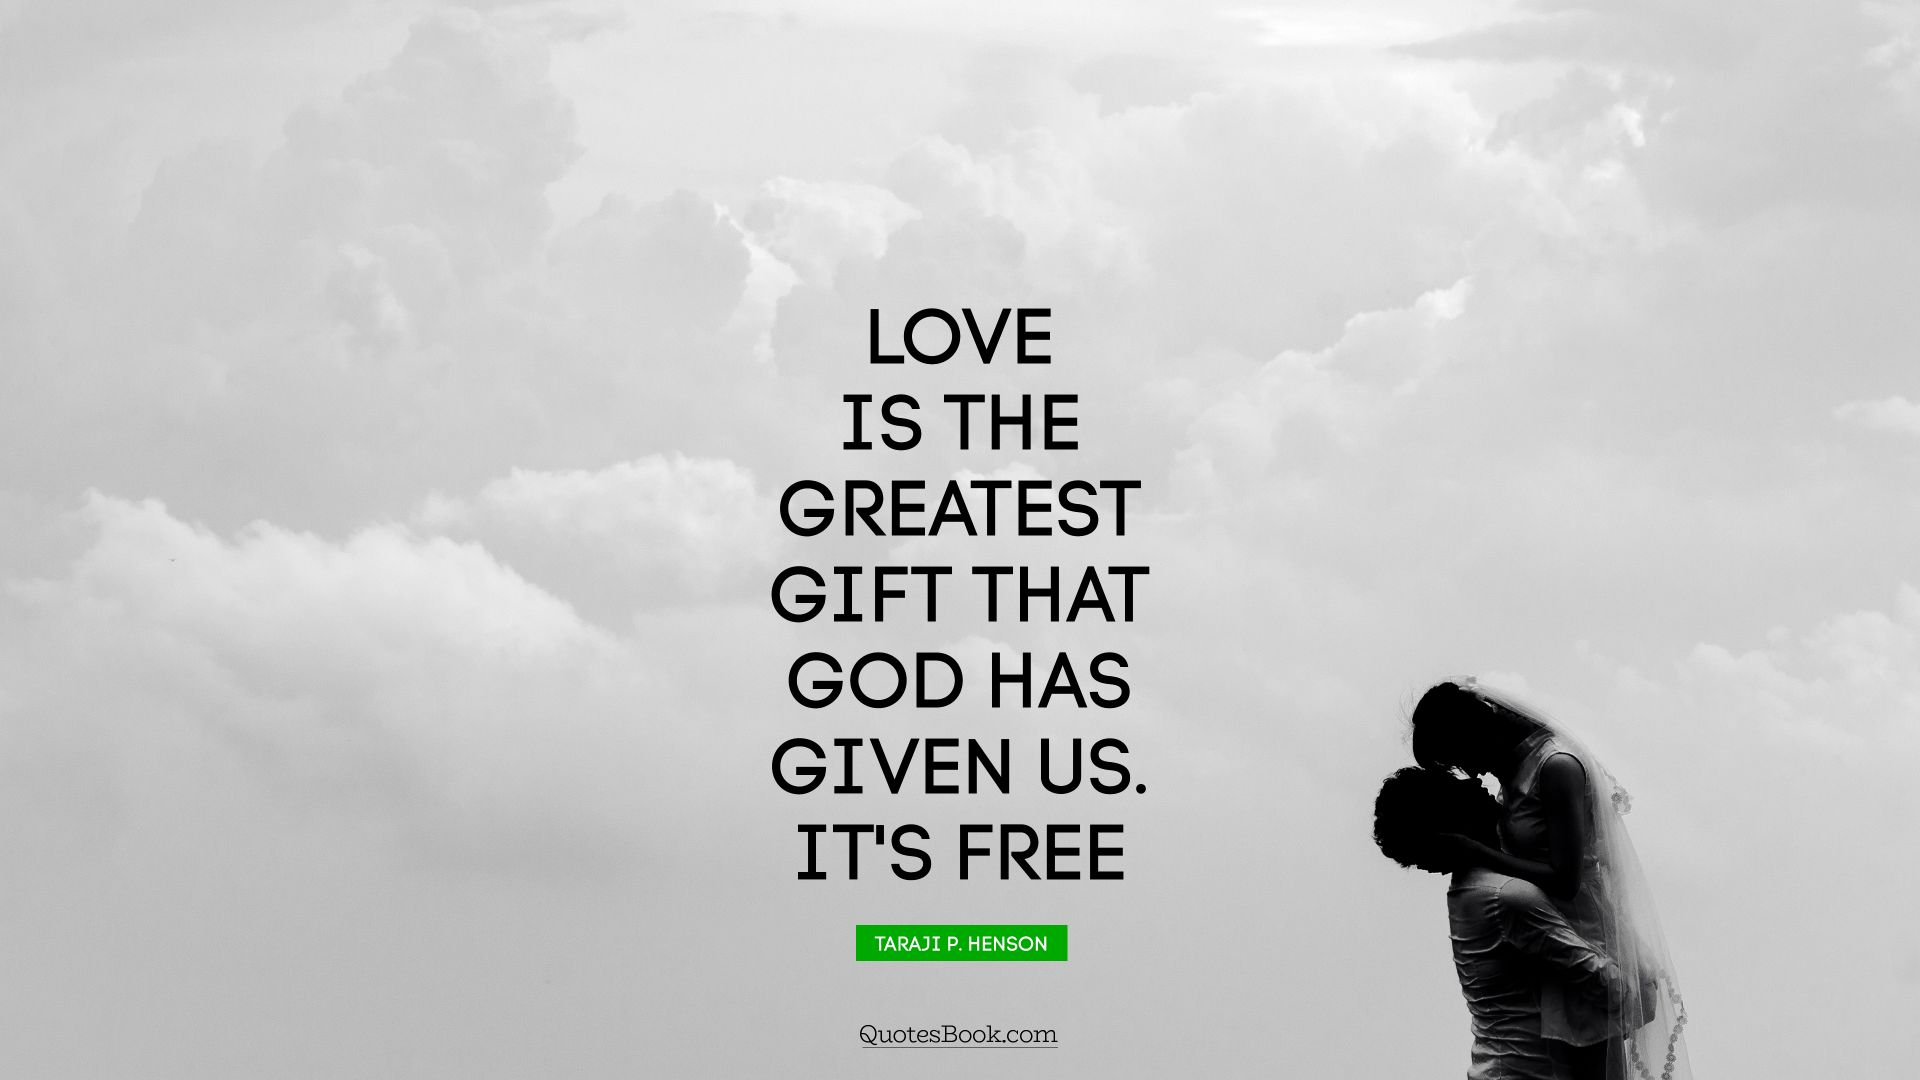 Love is the greatest gift that God has given us. It's free. - Quote by Taraji P. Henson